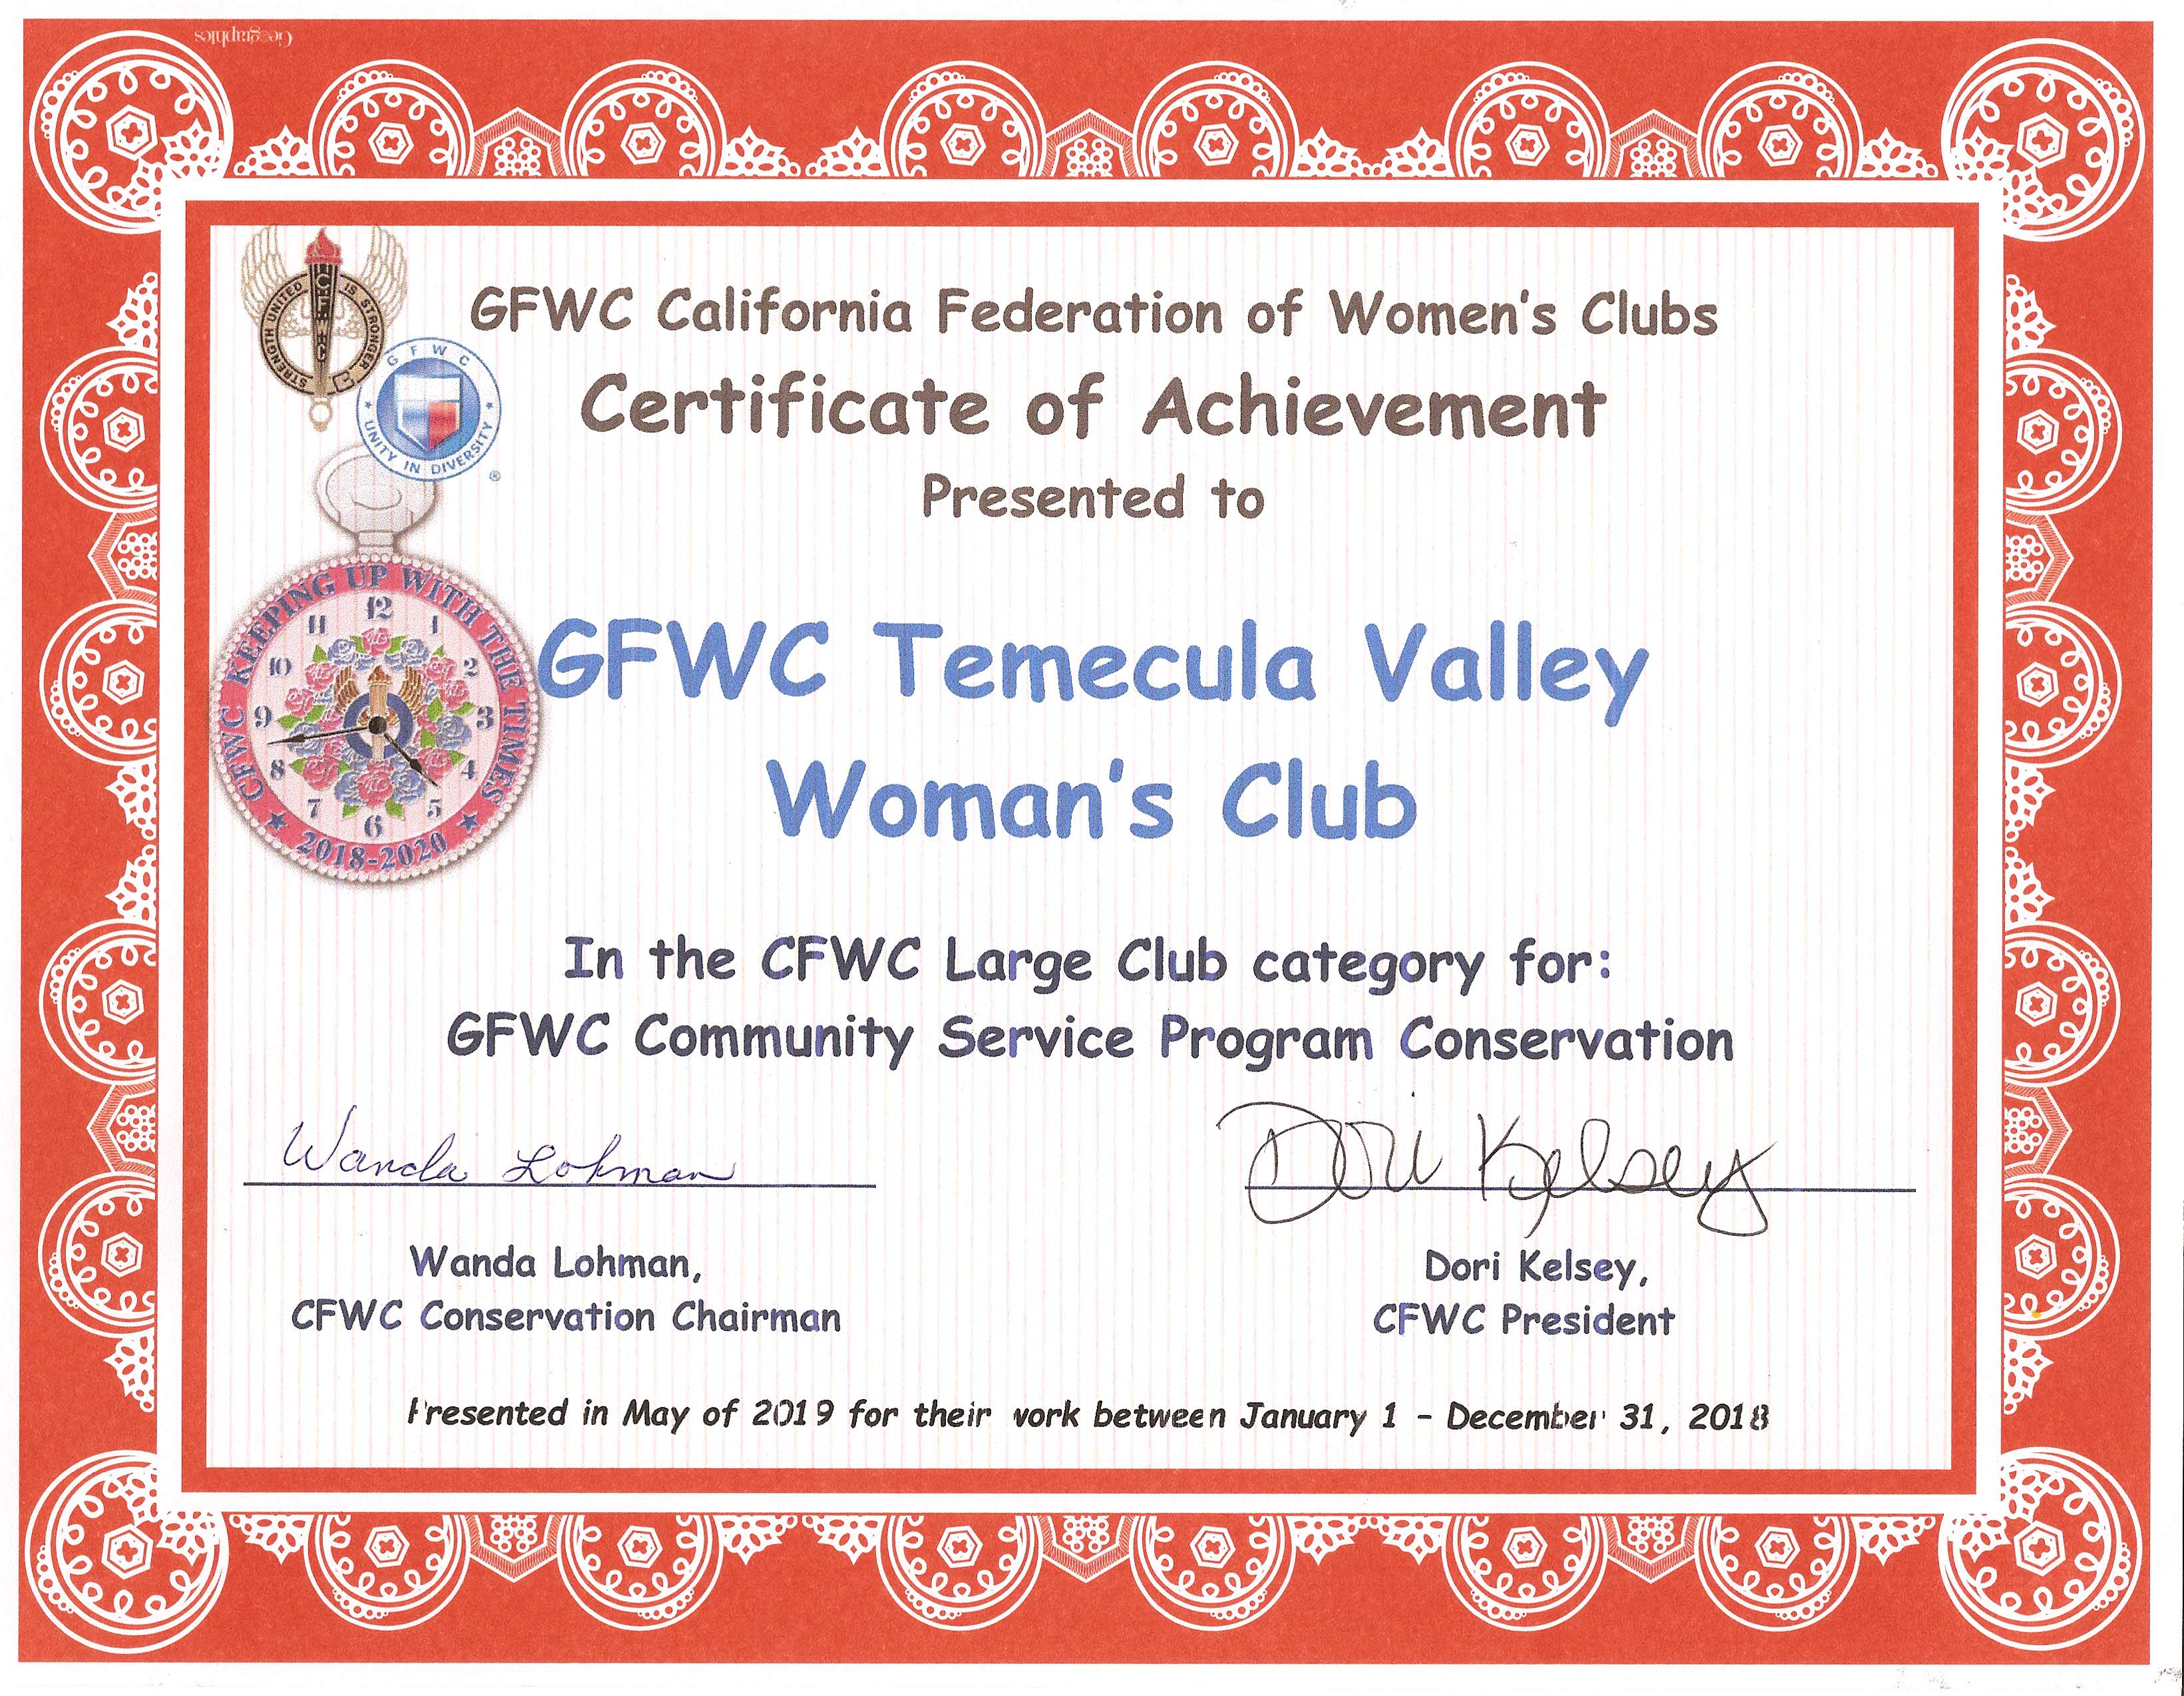 Community Service Program Conservation - CFWC May 2019